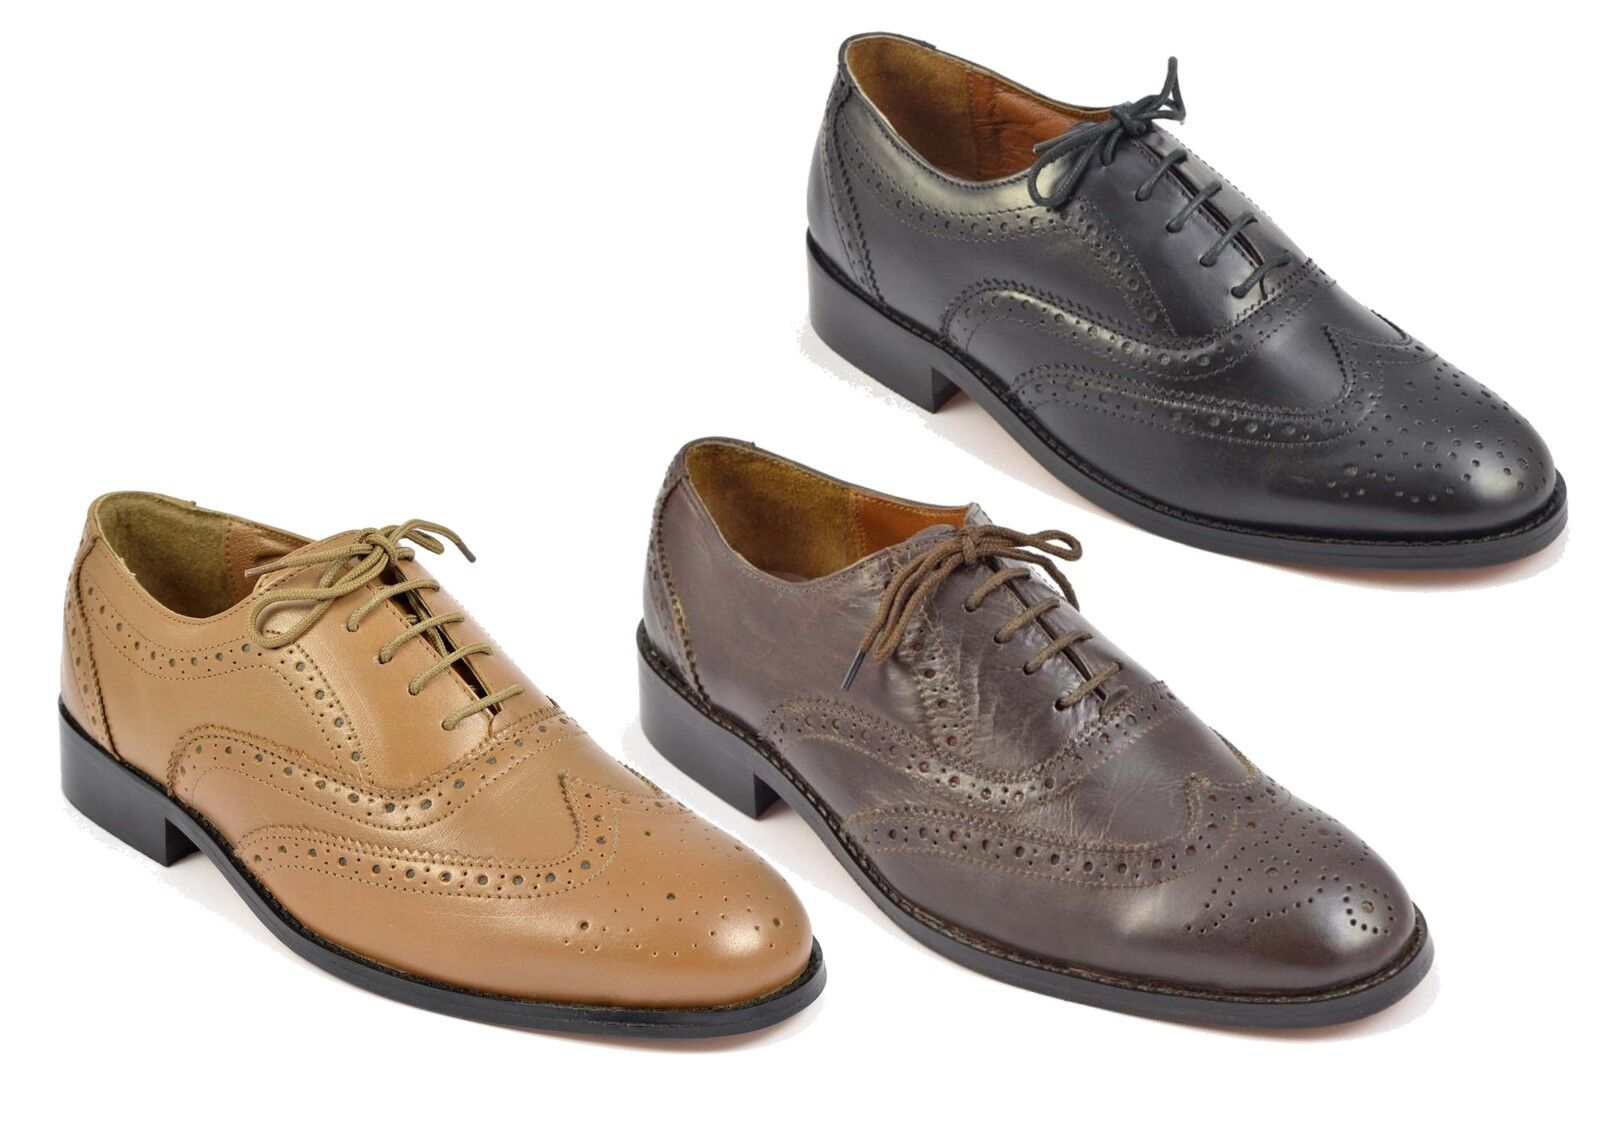 Mens Full Brogue shoes Leather Sole Lace Up Black shoes Tan Oxford Derby Sizes